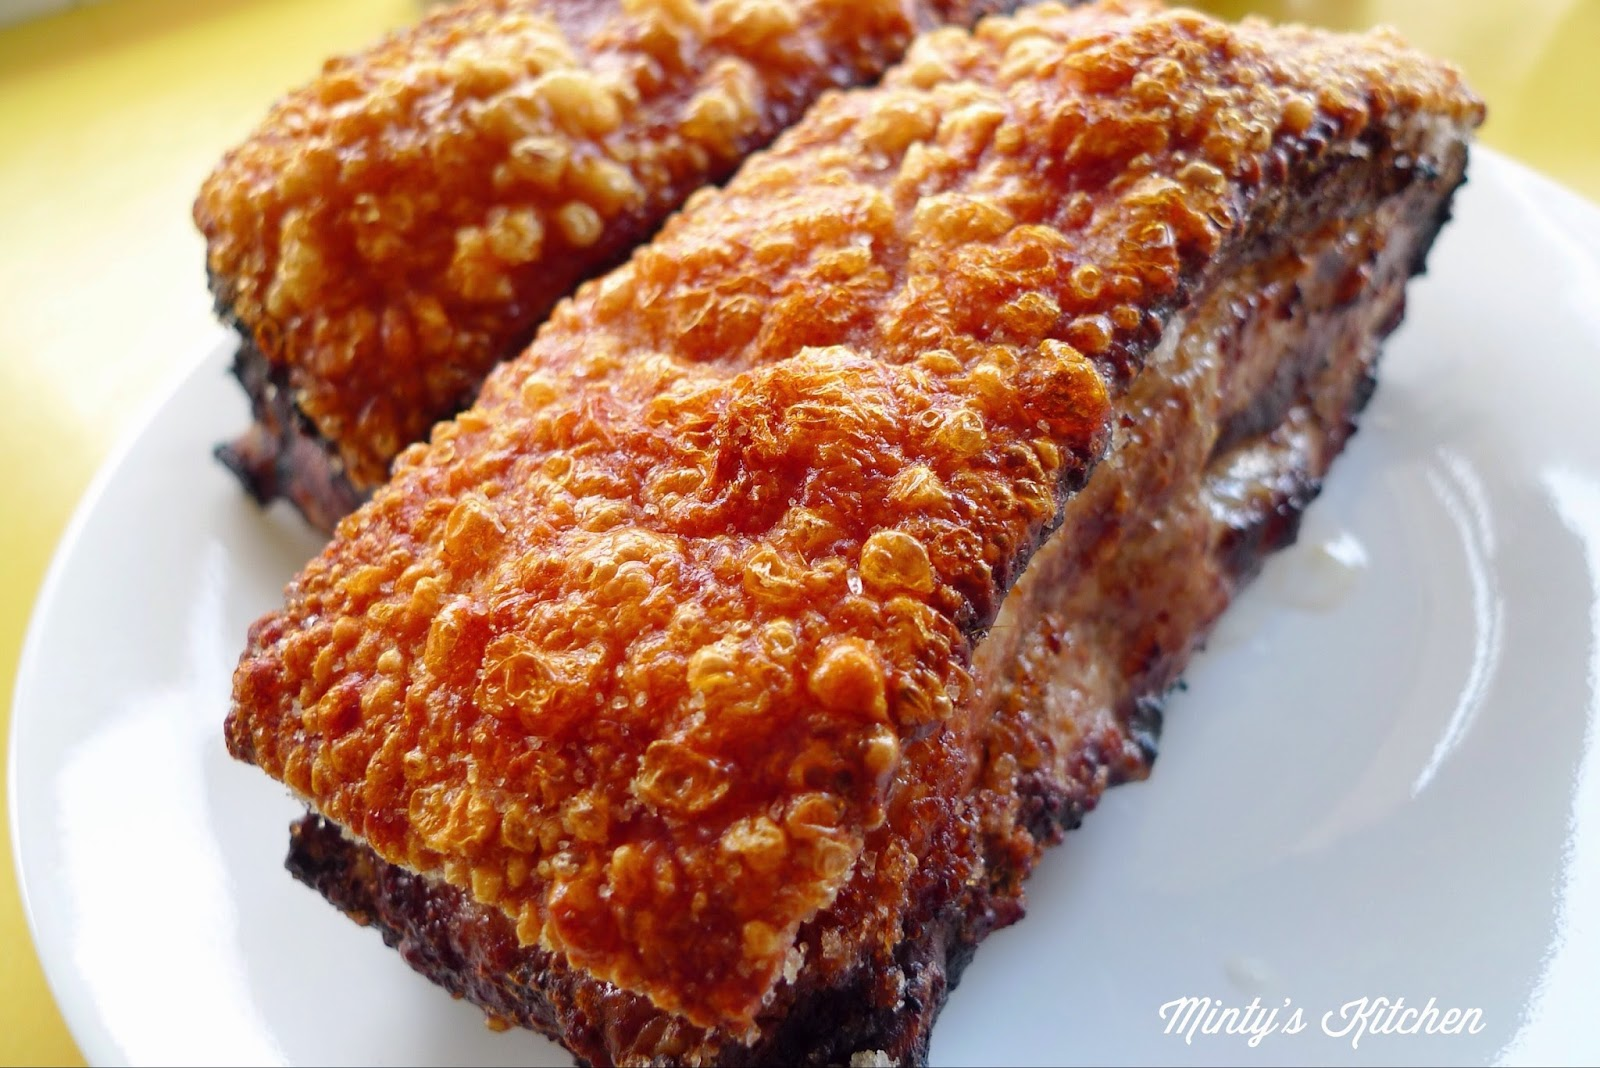 Minty's Kitchen: Crispy Roasted Pork Belly (脆皮燒肉)